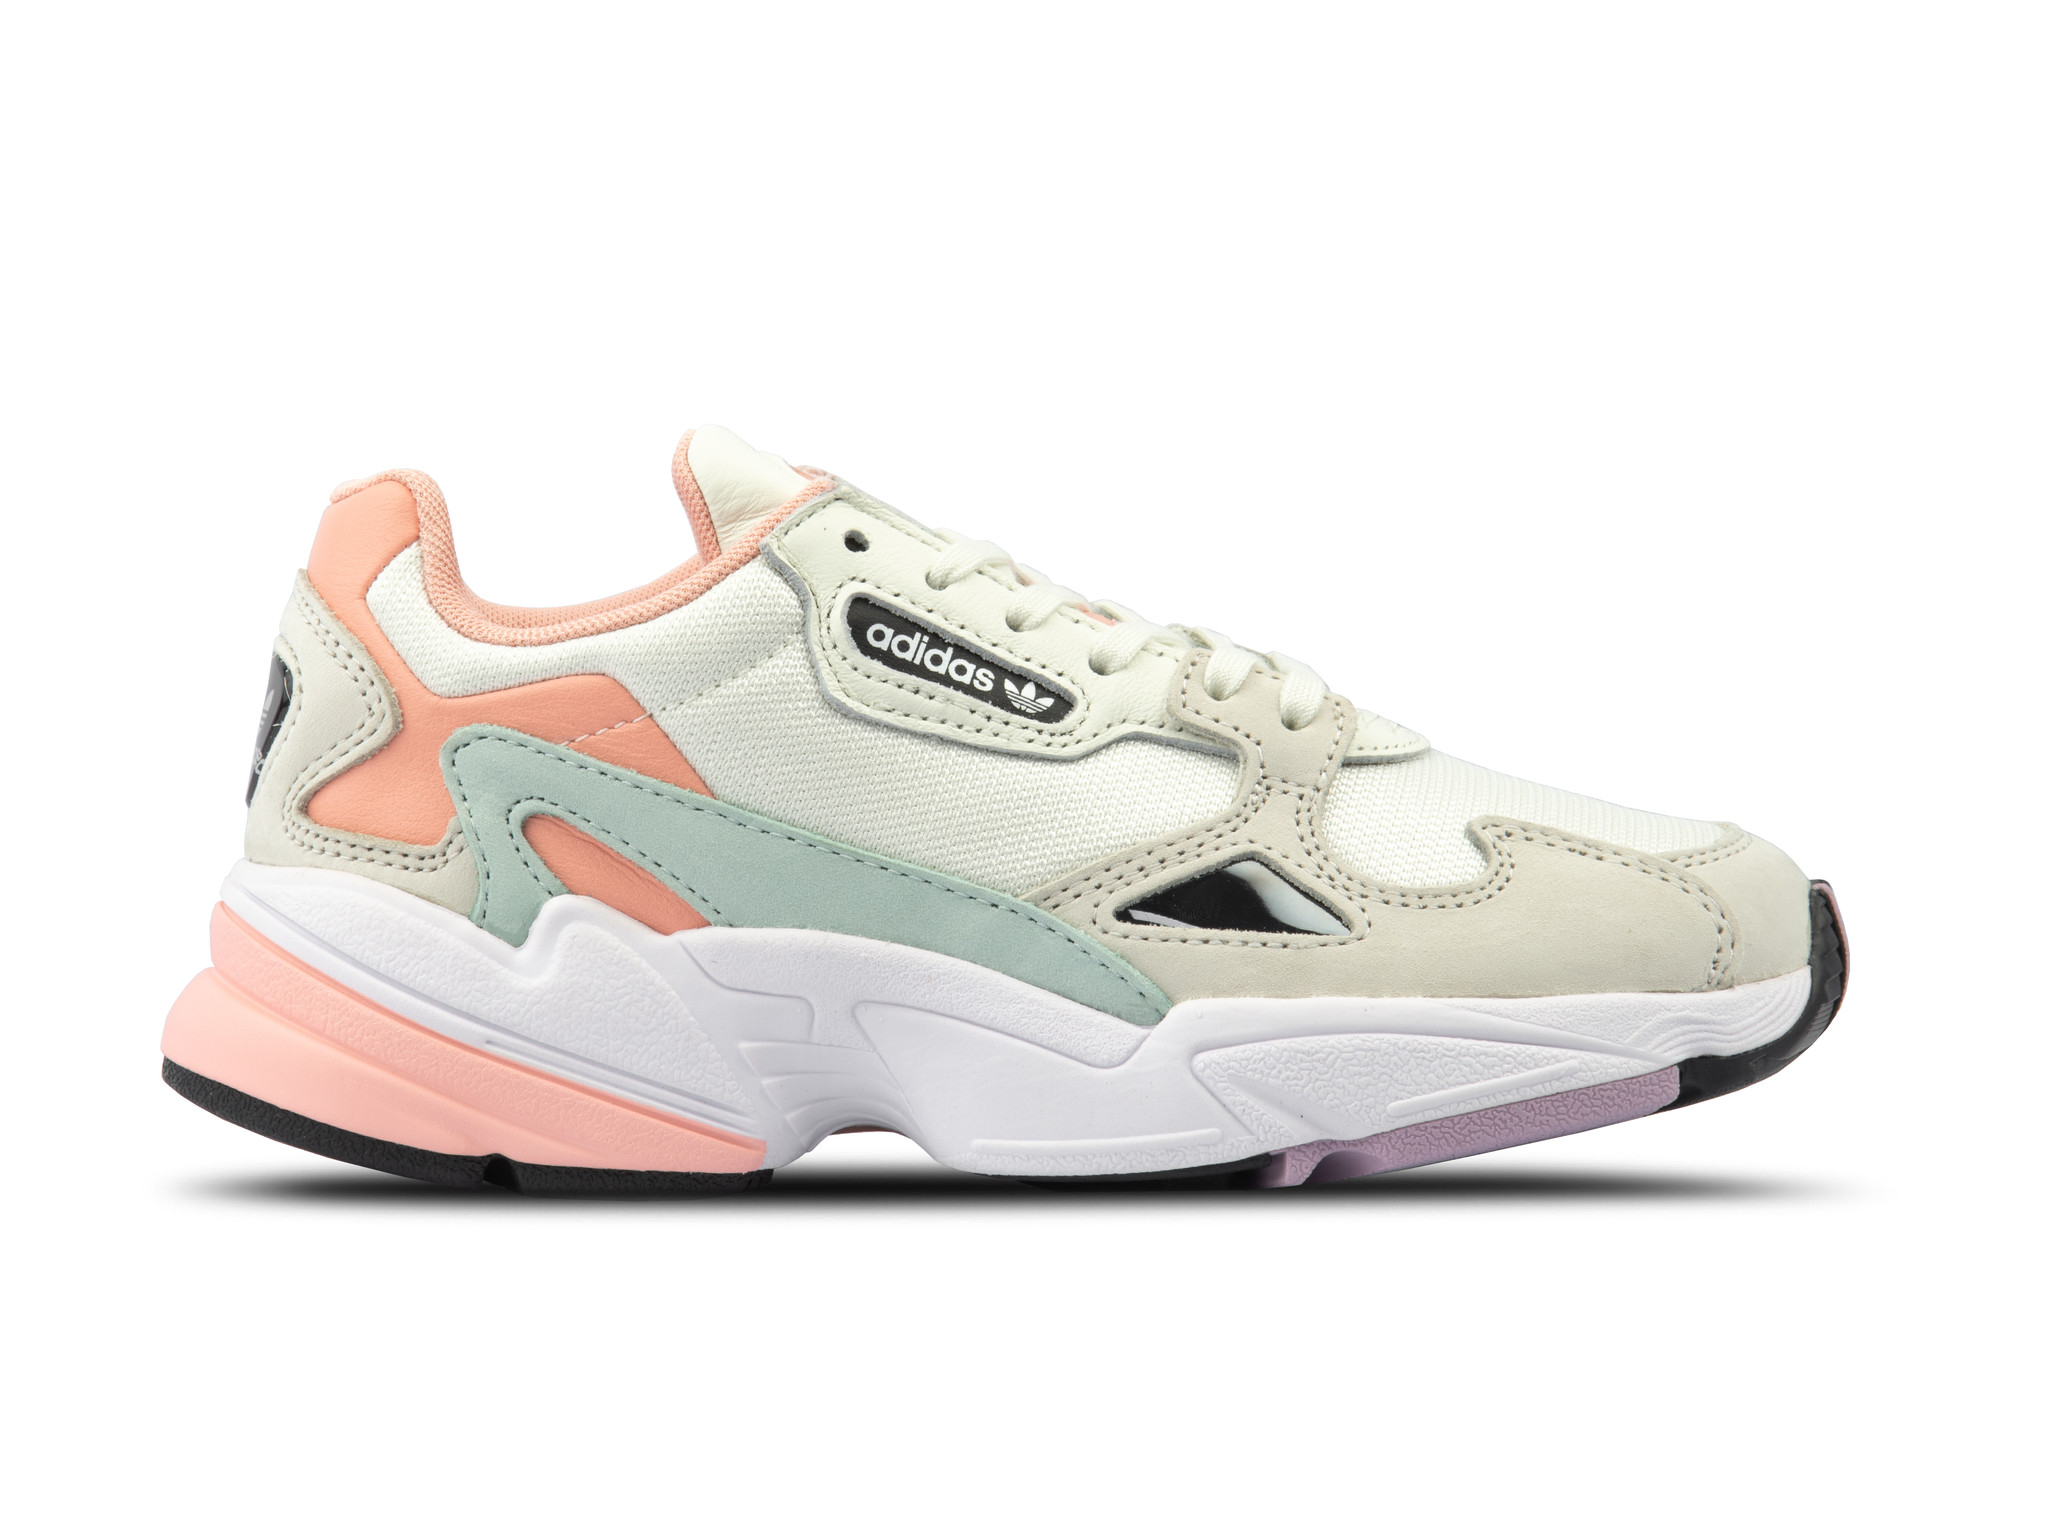 dff7600eb20 Falcon Running White Raw White Trace Pink EE4149